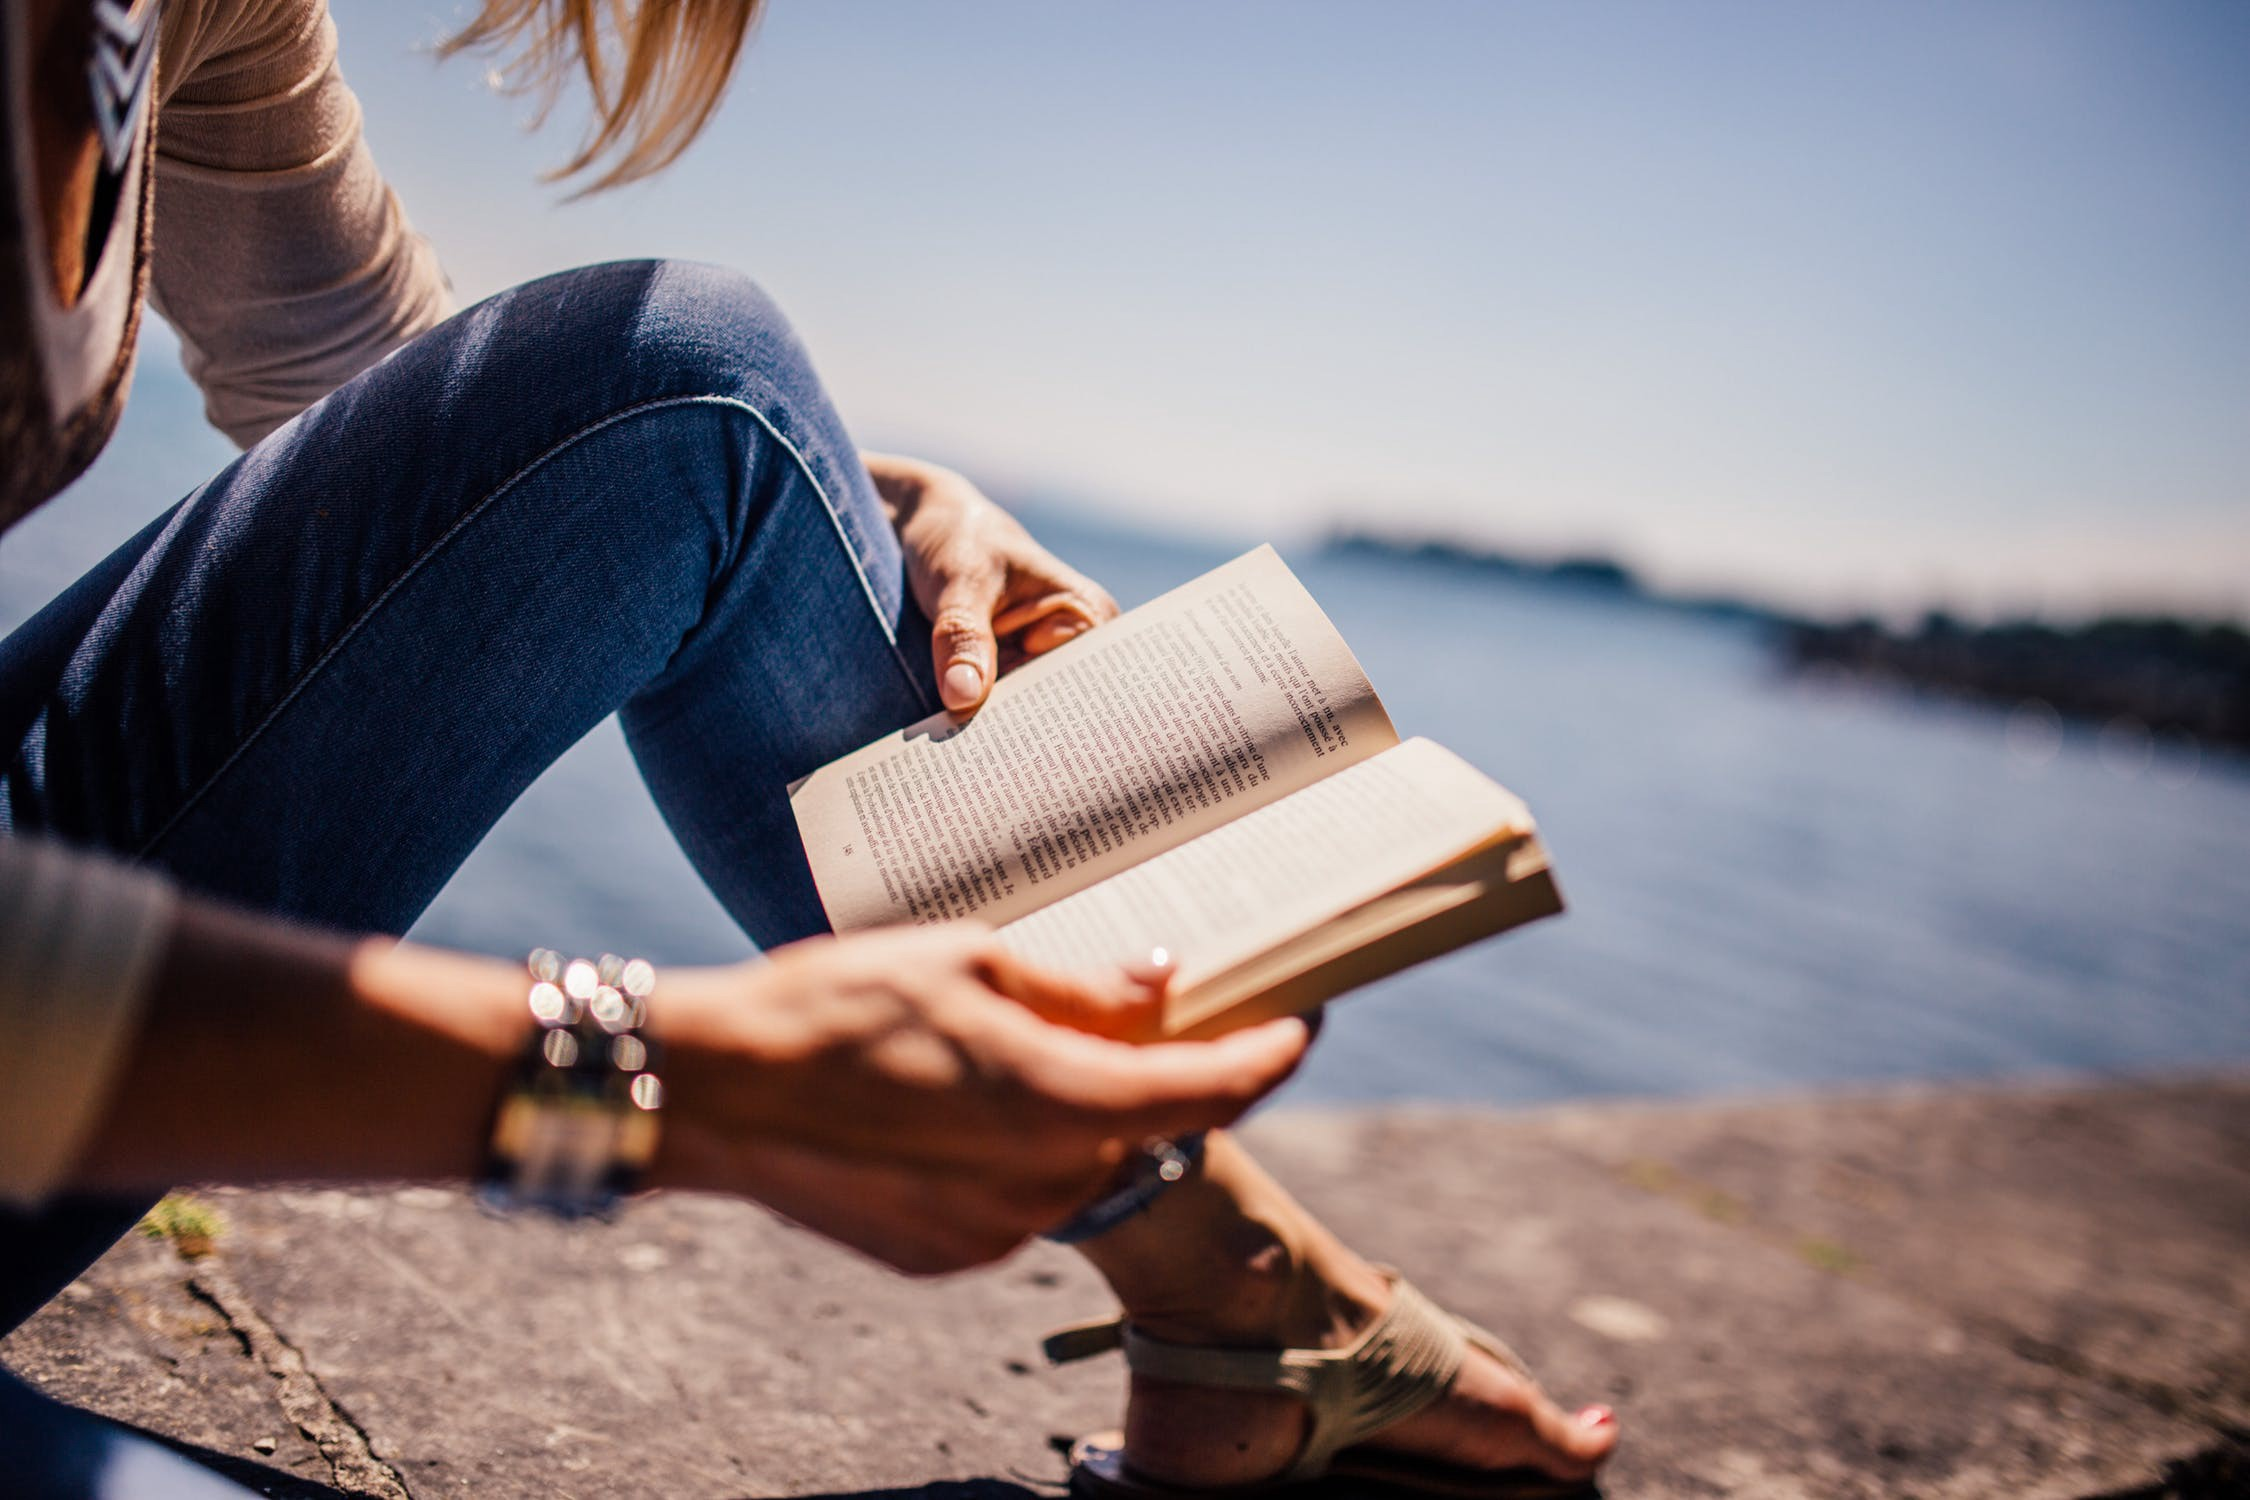 8 Ways Very Busy People Find The Time To Be Very Well Read